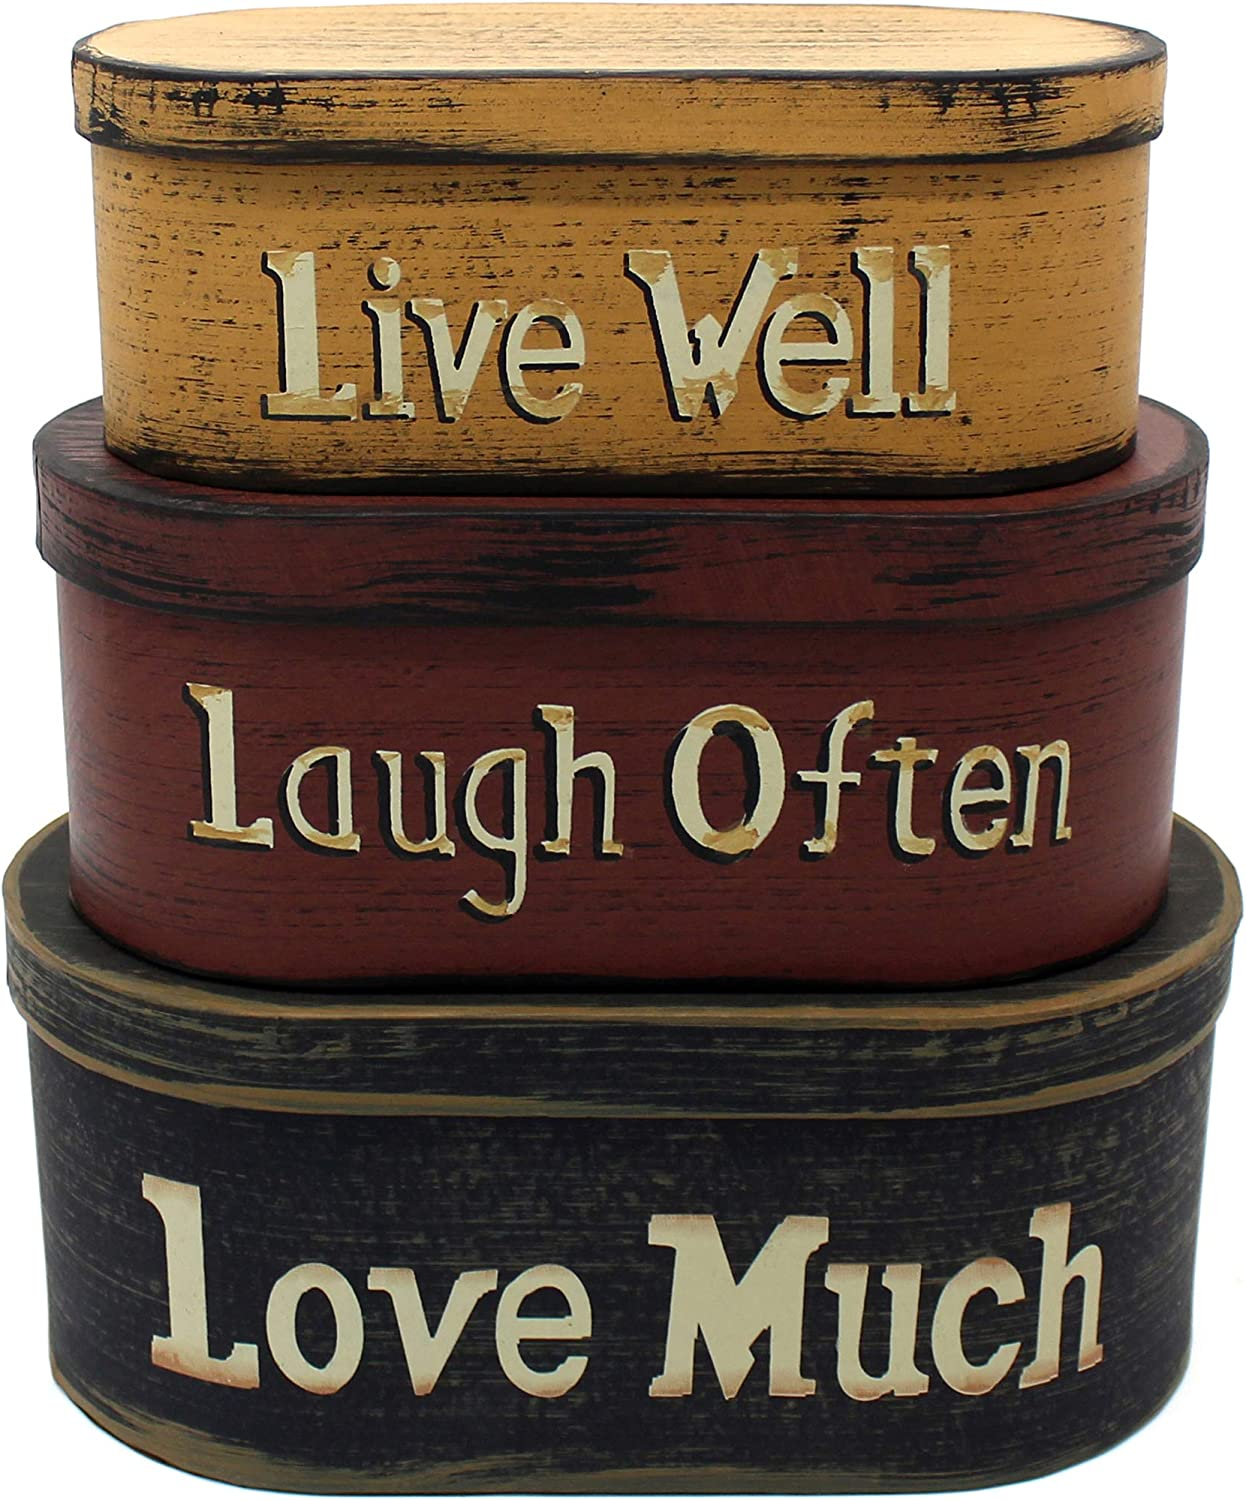 """CVHOMEDECO. Primitives Vintage Oval """"Live Well, Laugh Often, Love Much"""" Cardboard Nesting Boxes, Large 9-3/4 x 5-1/2 x 4 Inch, Set of 3."""